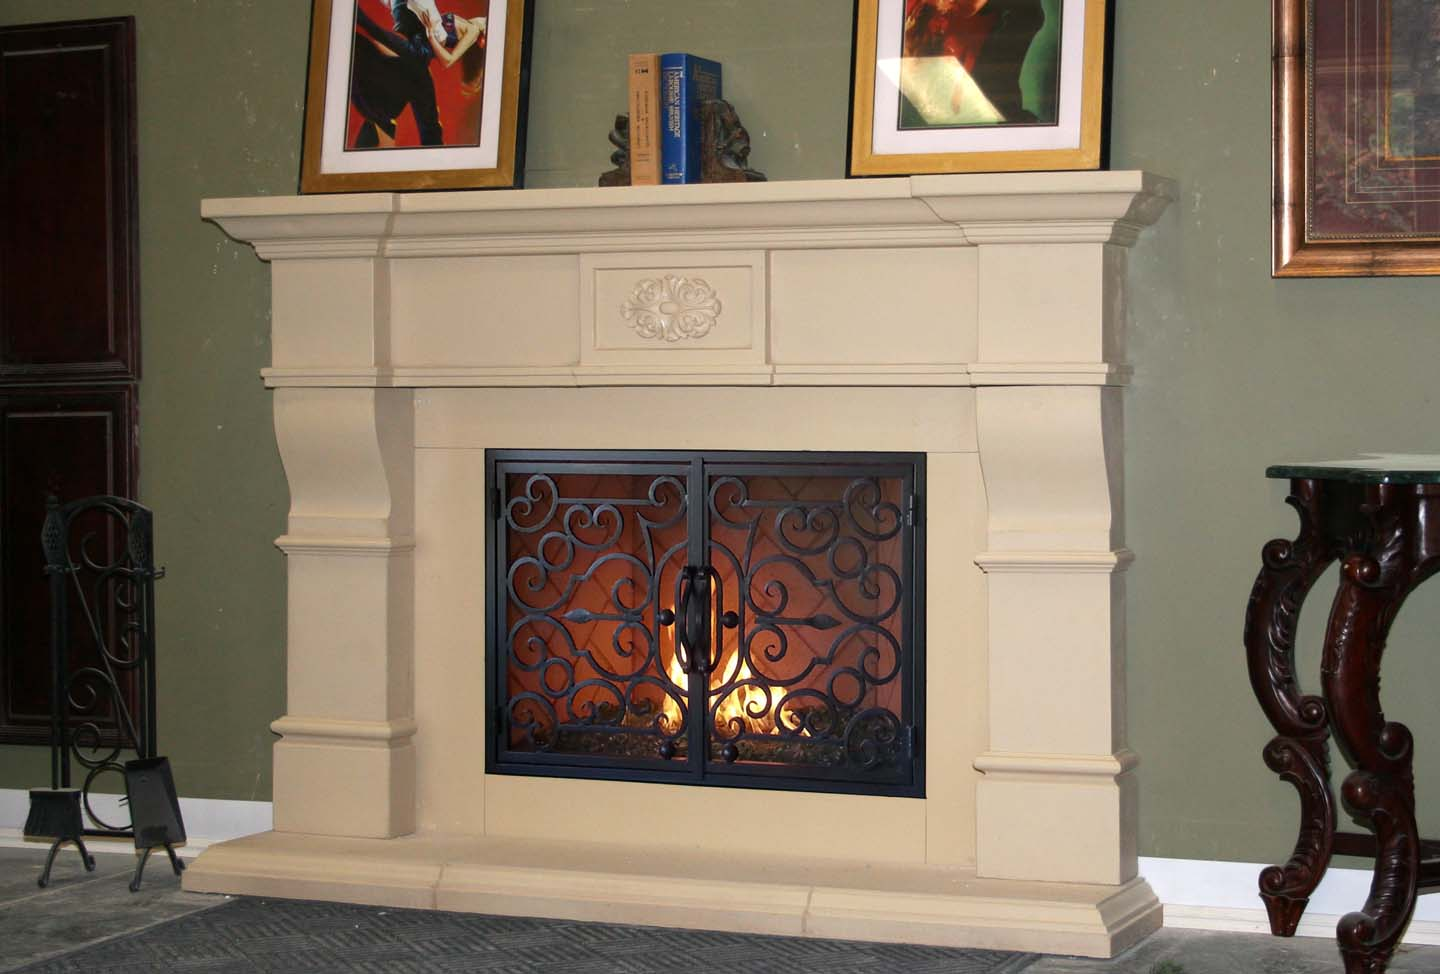 Mt228 Fireplace Mantels Fireplace Surrounds Iron